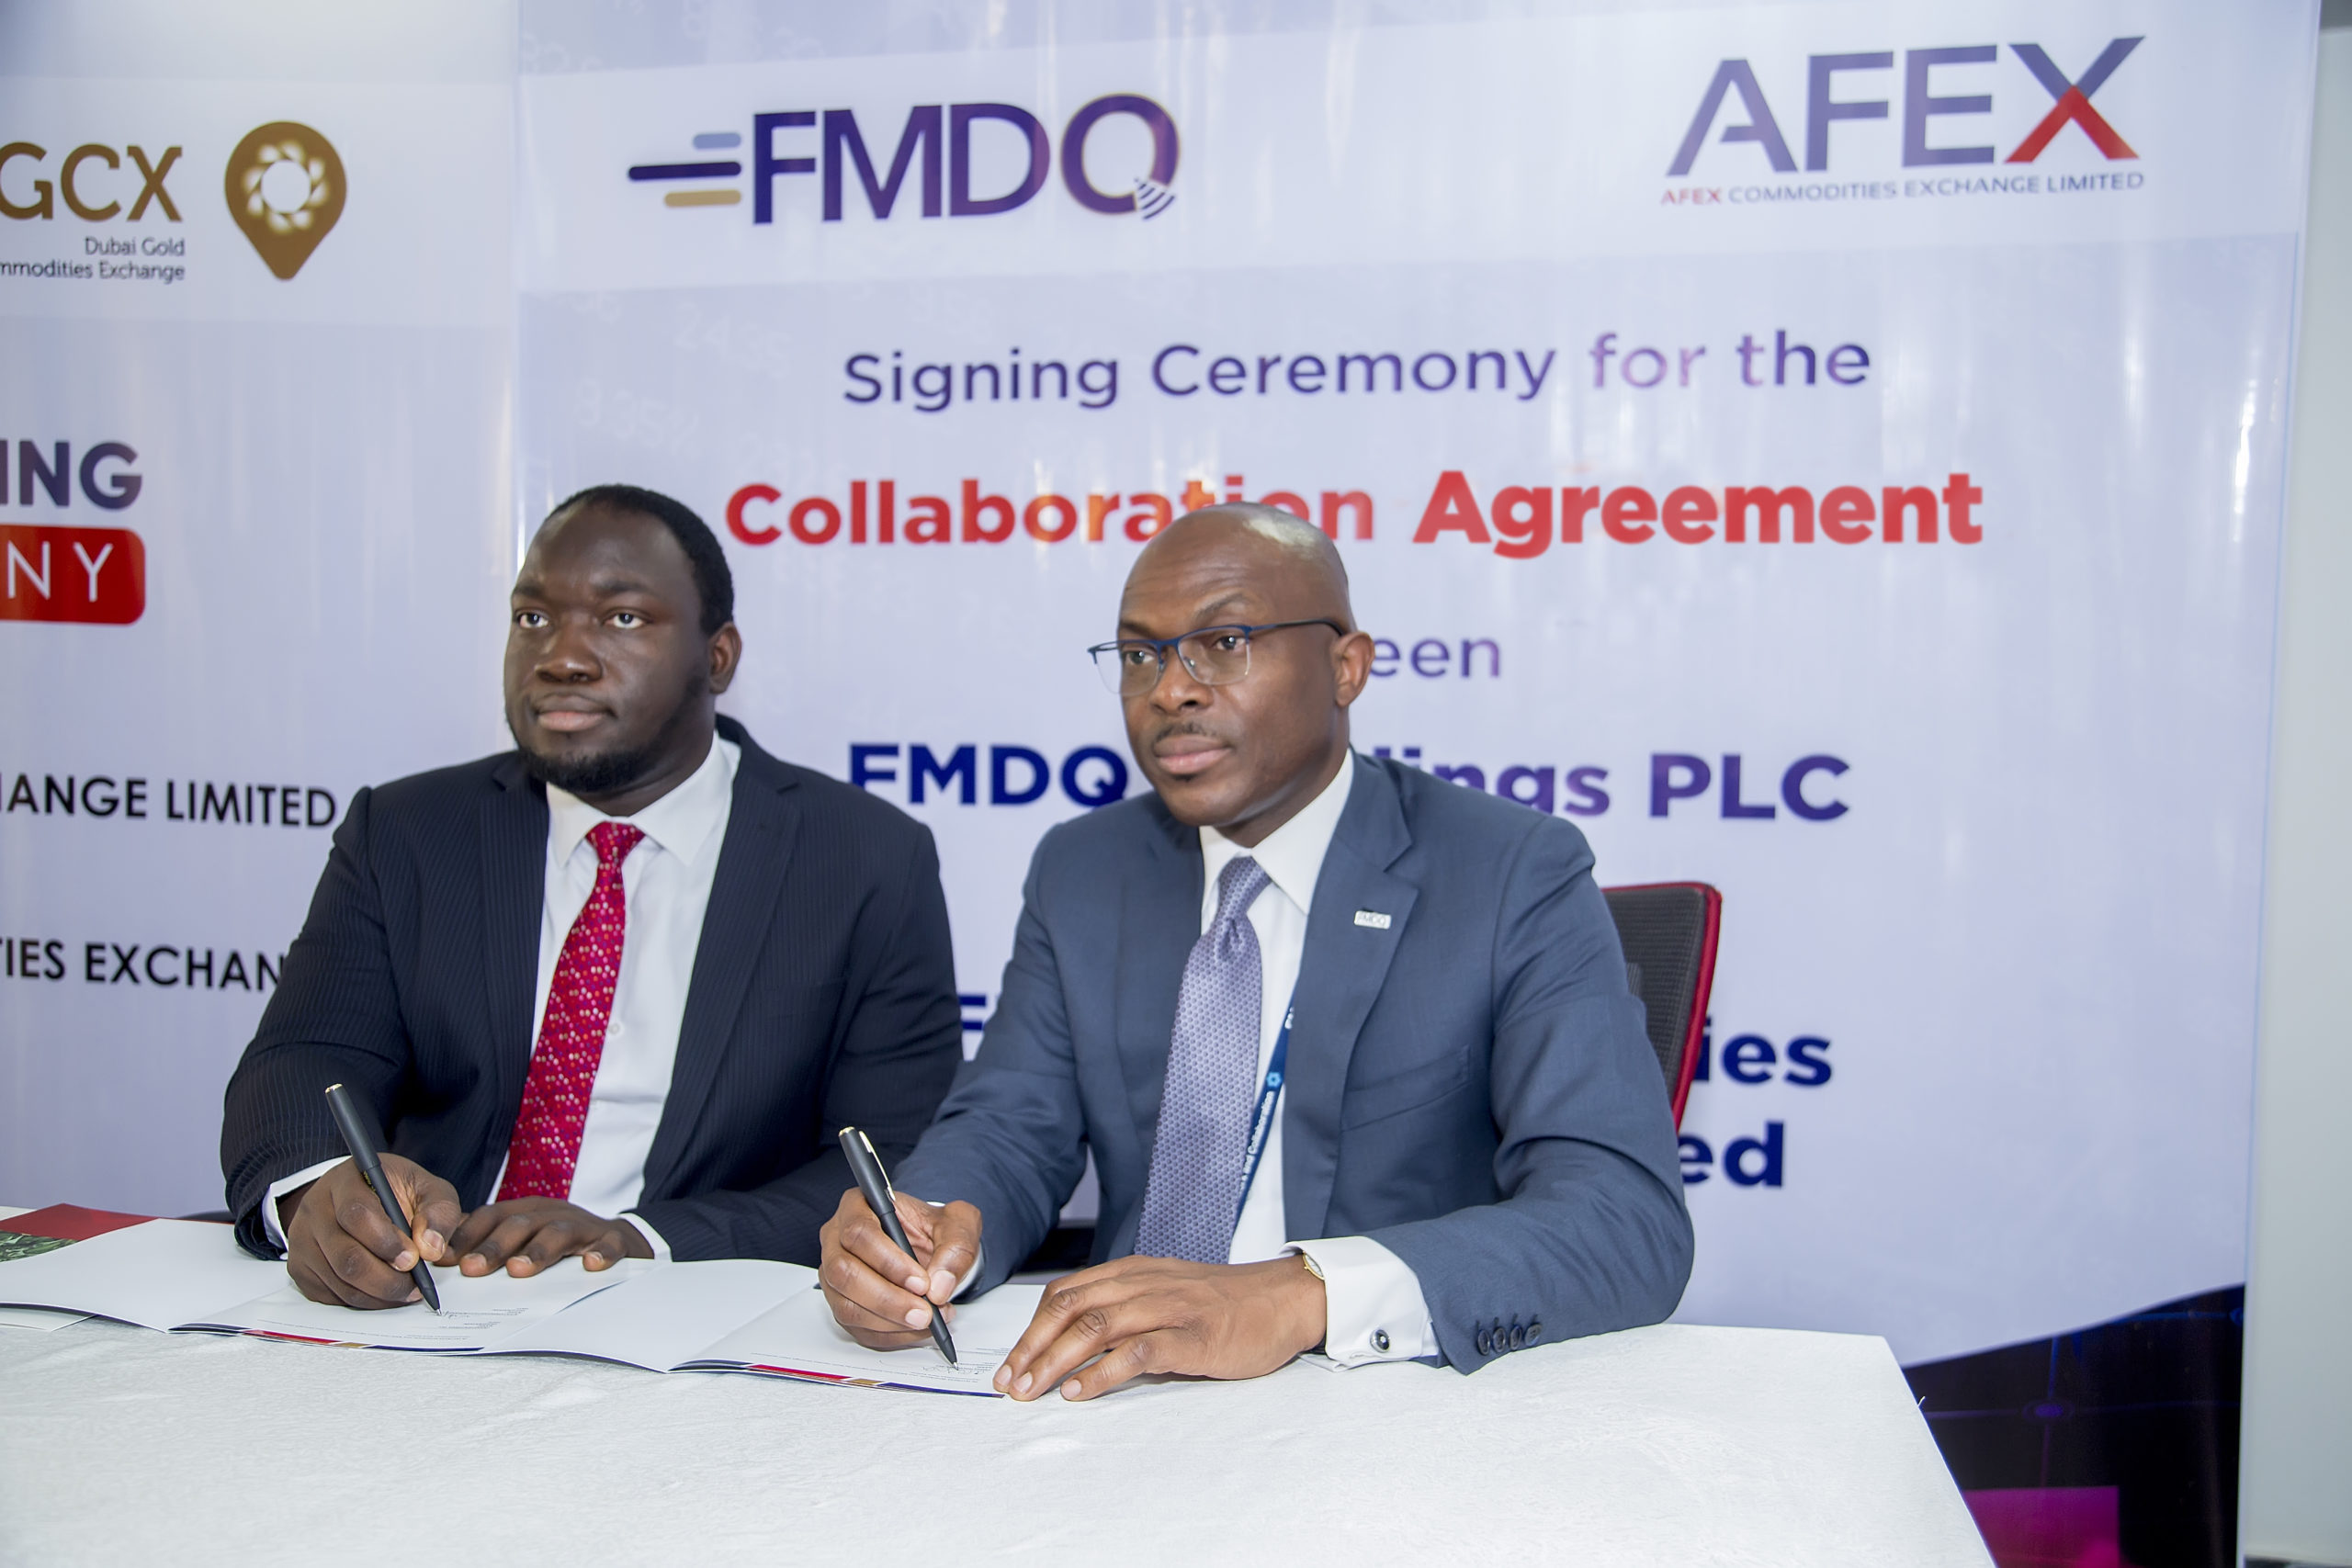 AFEX and FMDQ Sign MoU to Promote Product Innovation for Nigeria's Capital Market